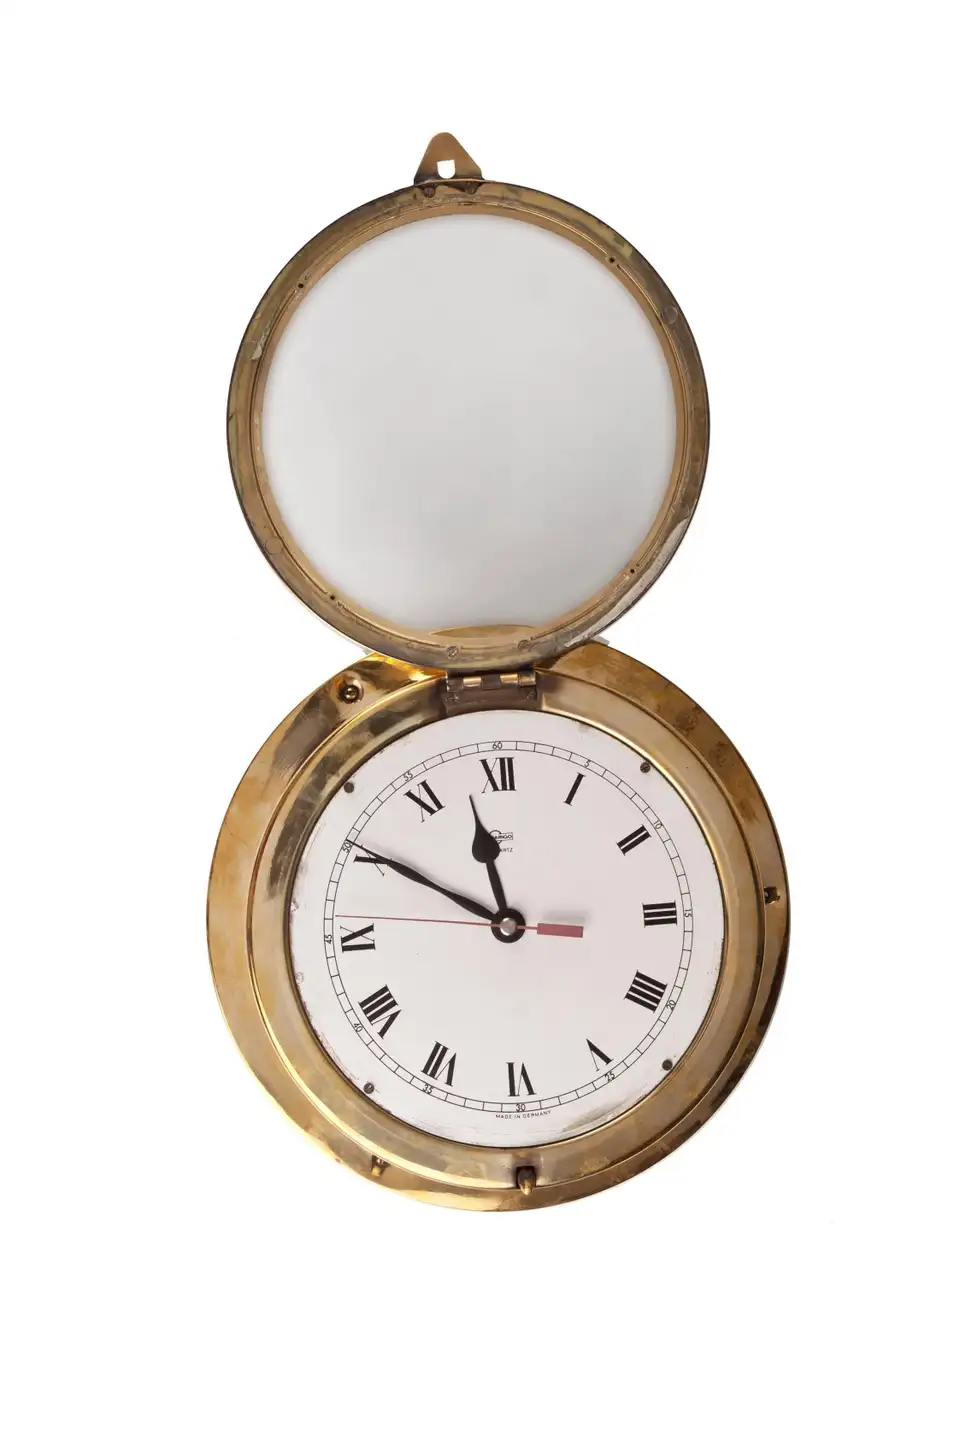 For Sale On 1stdibs A Brass Ship S Clock With Roman Numeral Dial In Working Order With Replaced Battery Mechanism Signed In 2020 Nautical Clocks Clock Brass Ship